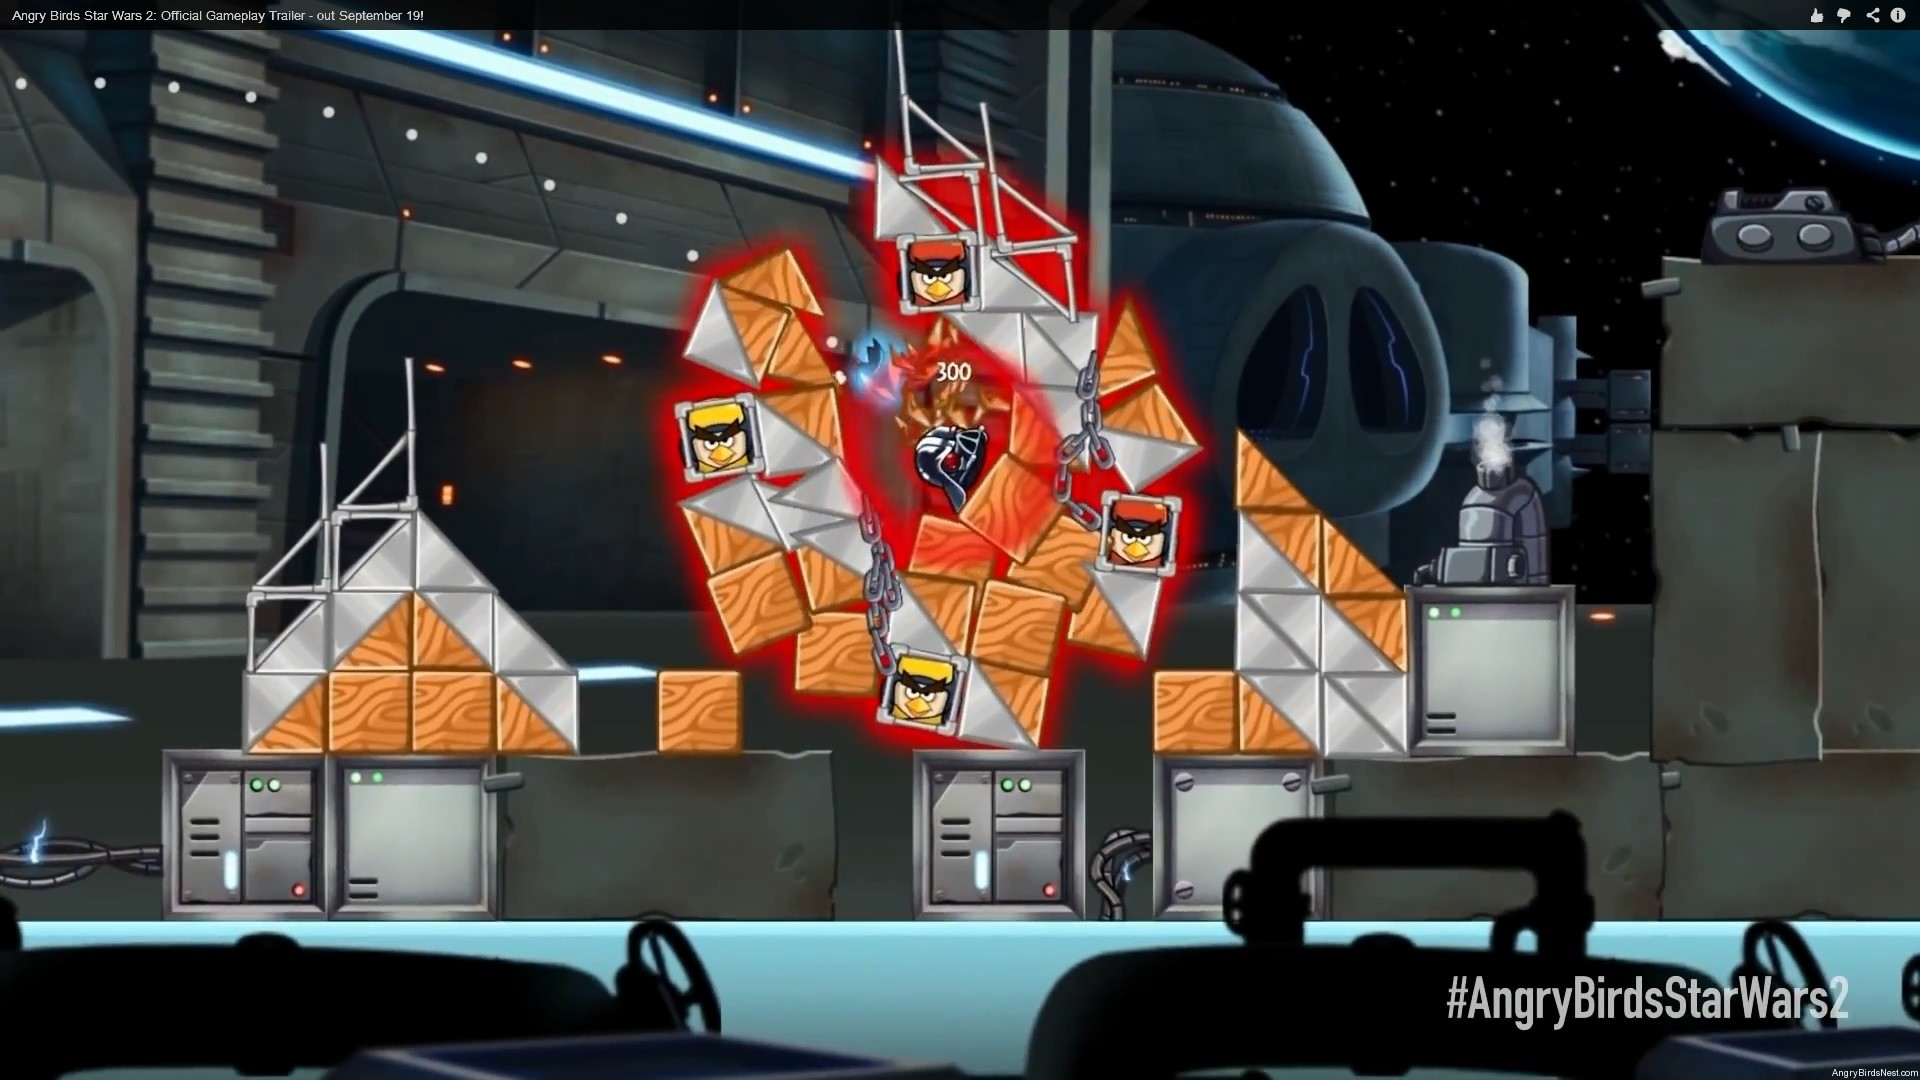 Angry Birds Star Wars Ii Official Gameplay Trailer